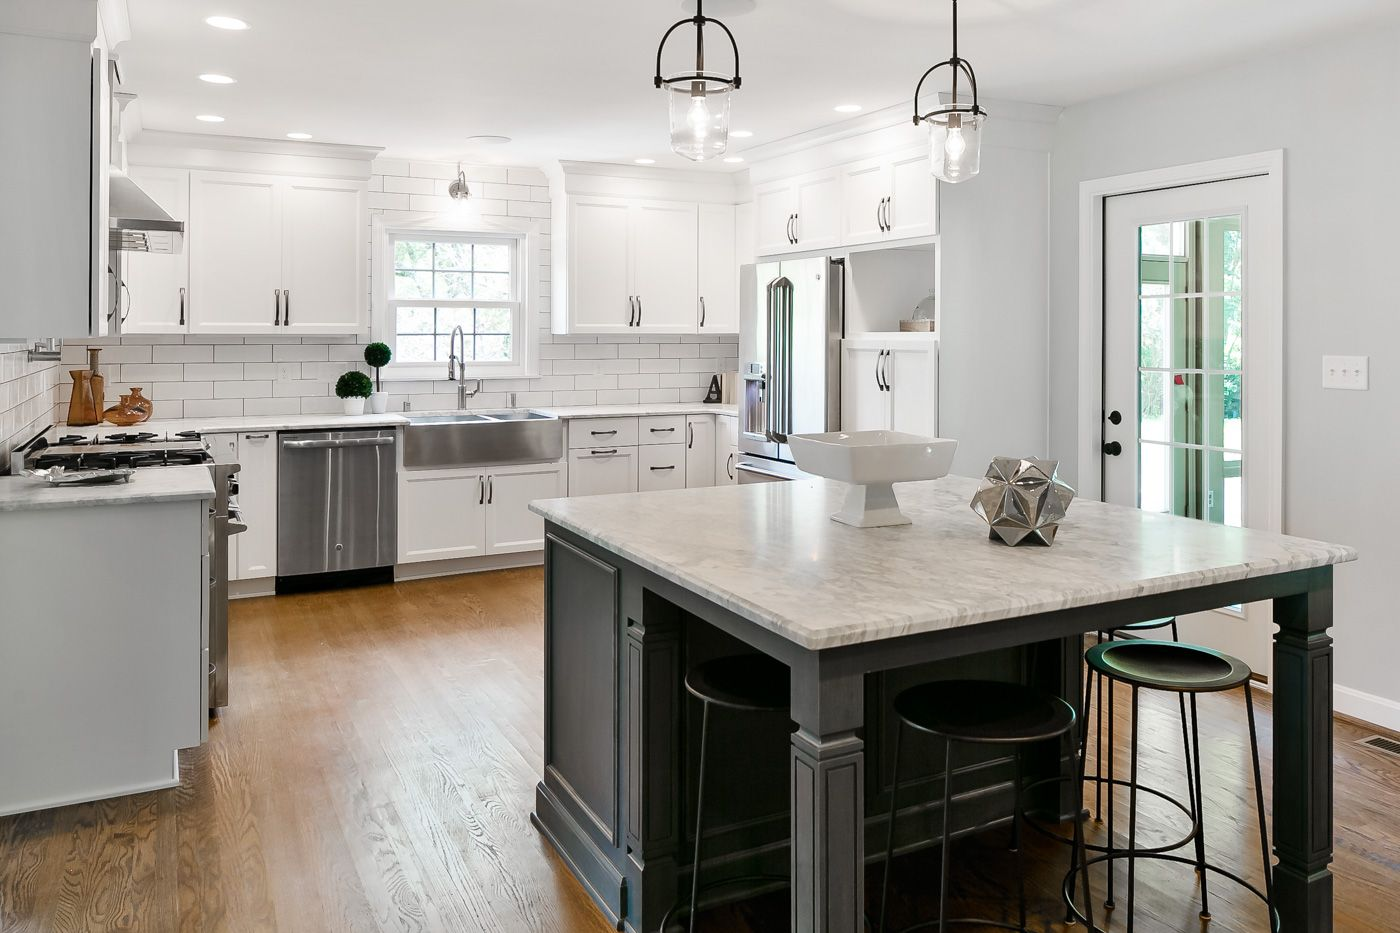 Cabinets And Carrera Marble Countertops